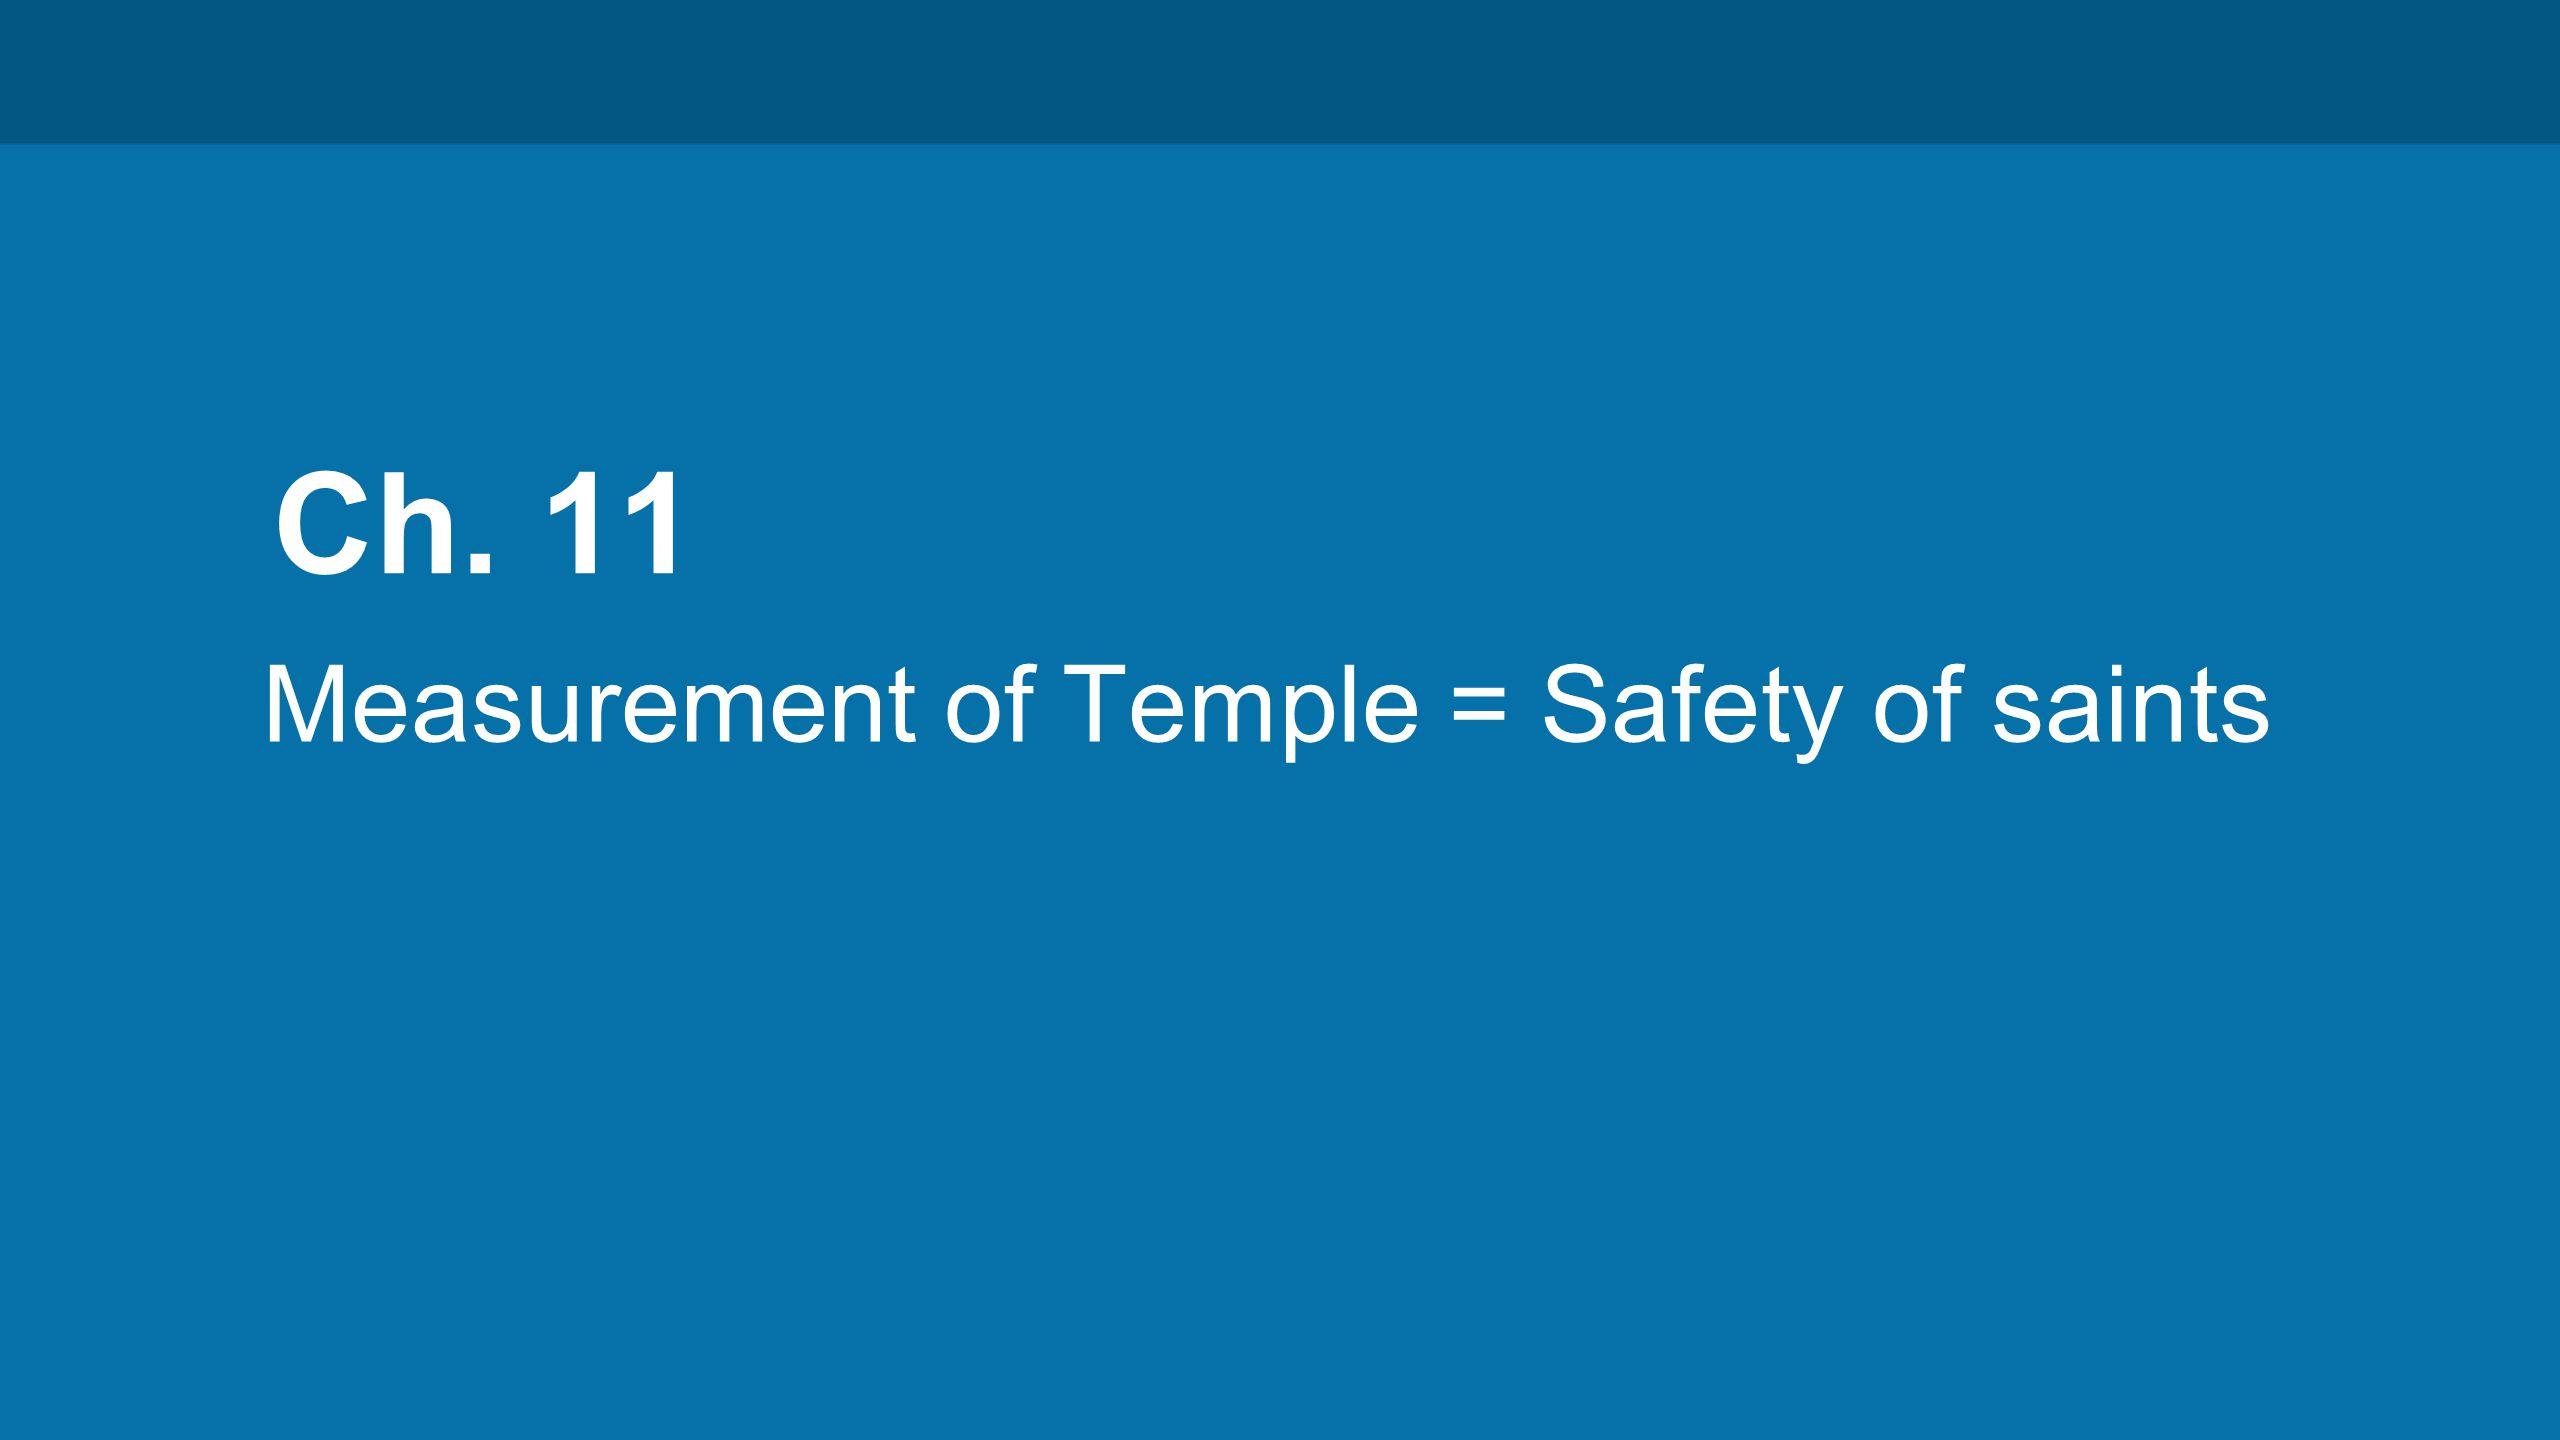 Ch. 11 Measurement of Temple = Safety of saints